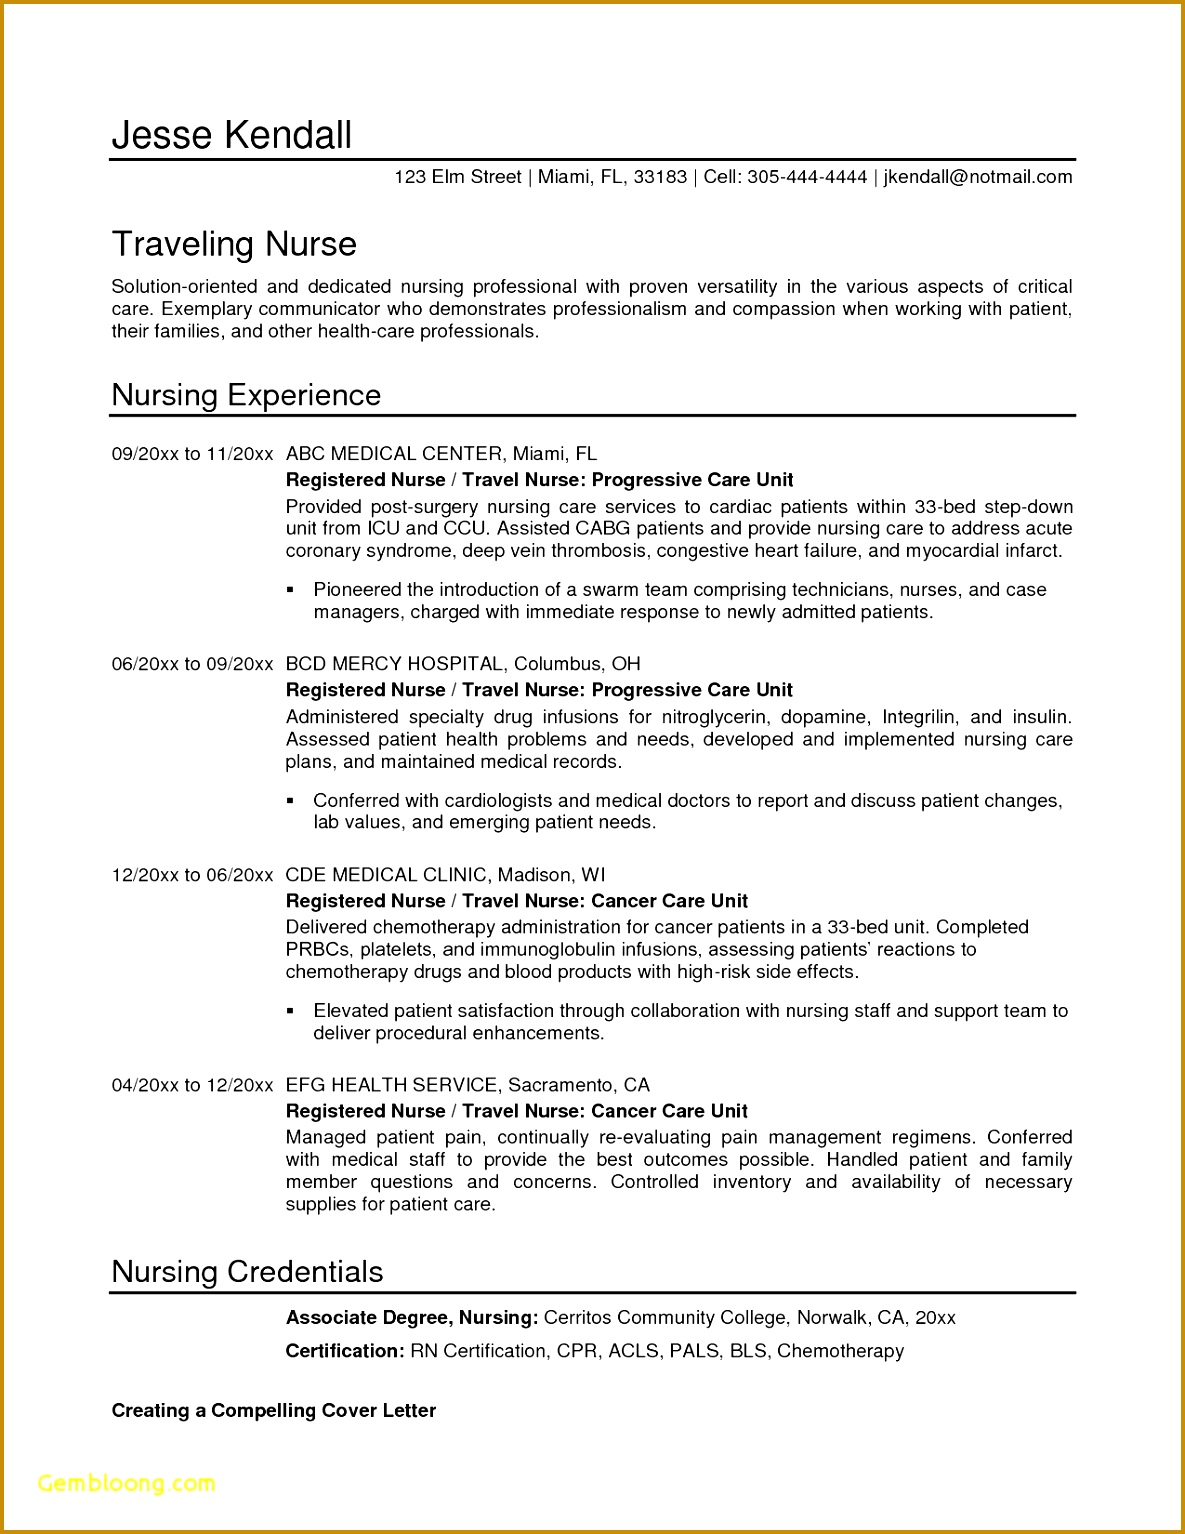 Resume format for Nursing Inspirational Registered Nurse Resume S I Pinimg 736x 8d 0d D8 15341185